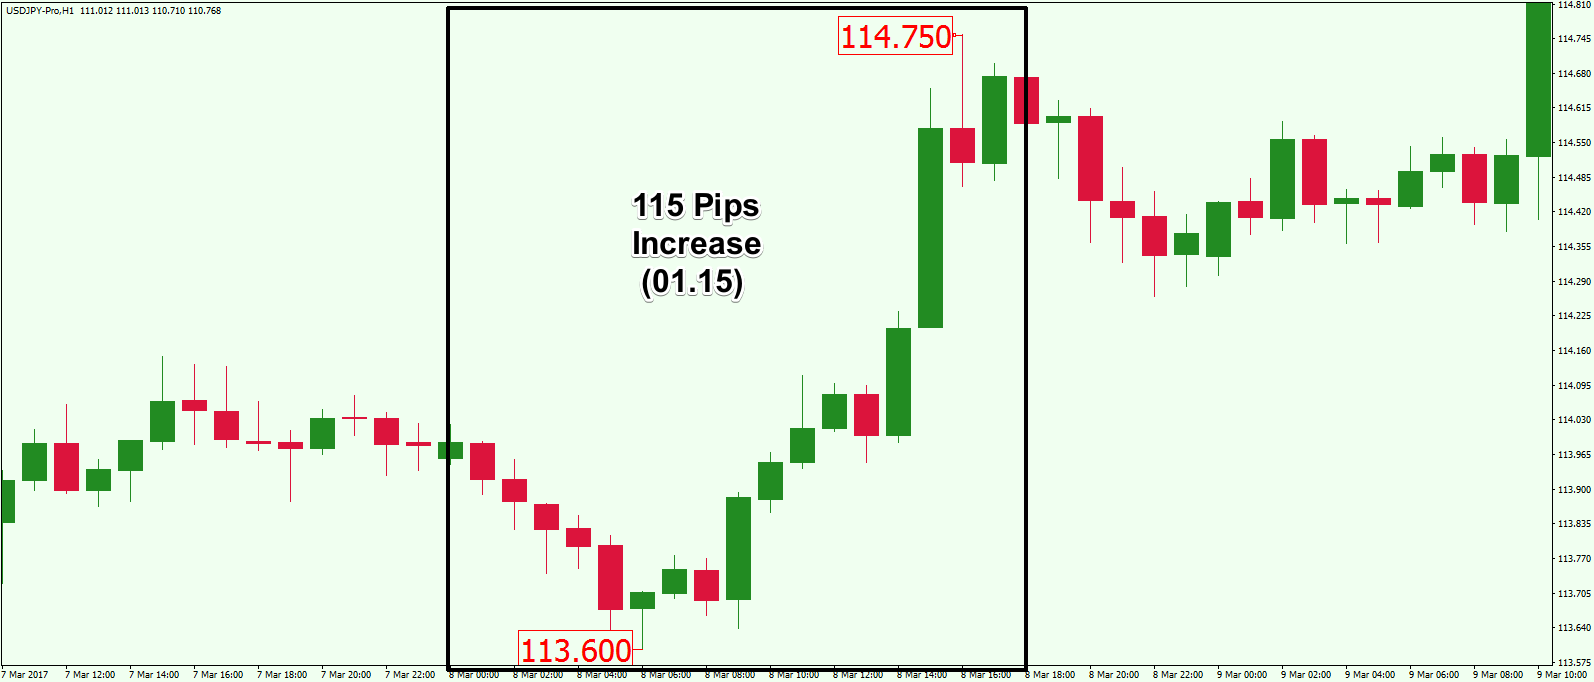 How are pips calculated in forex